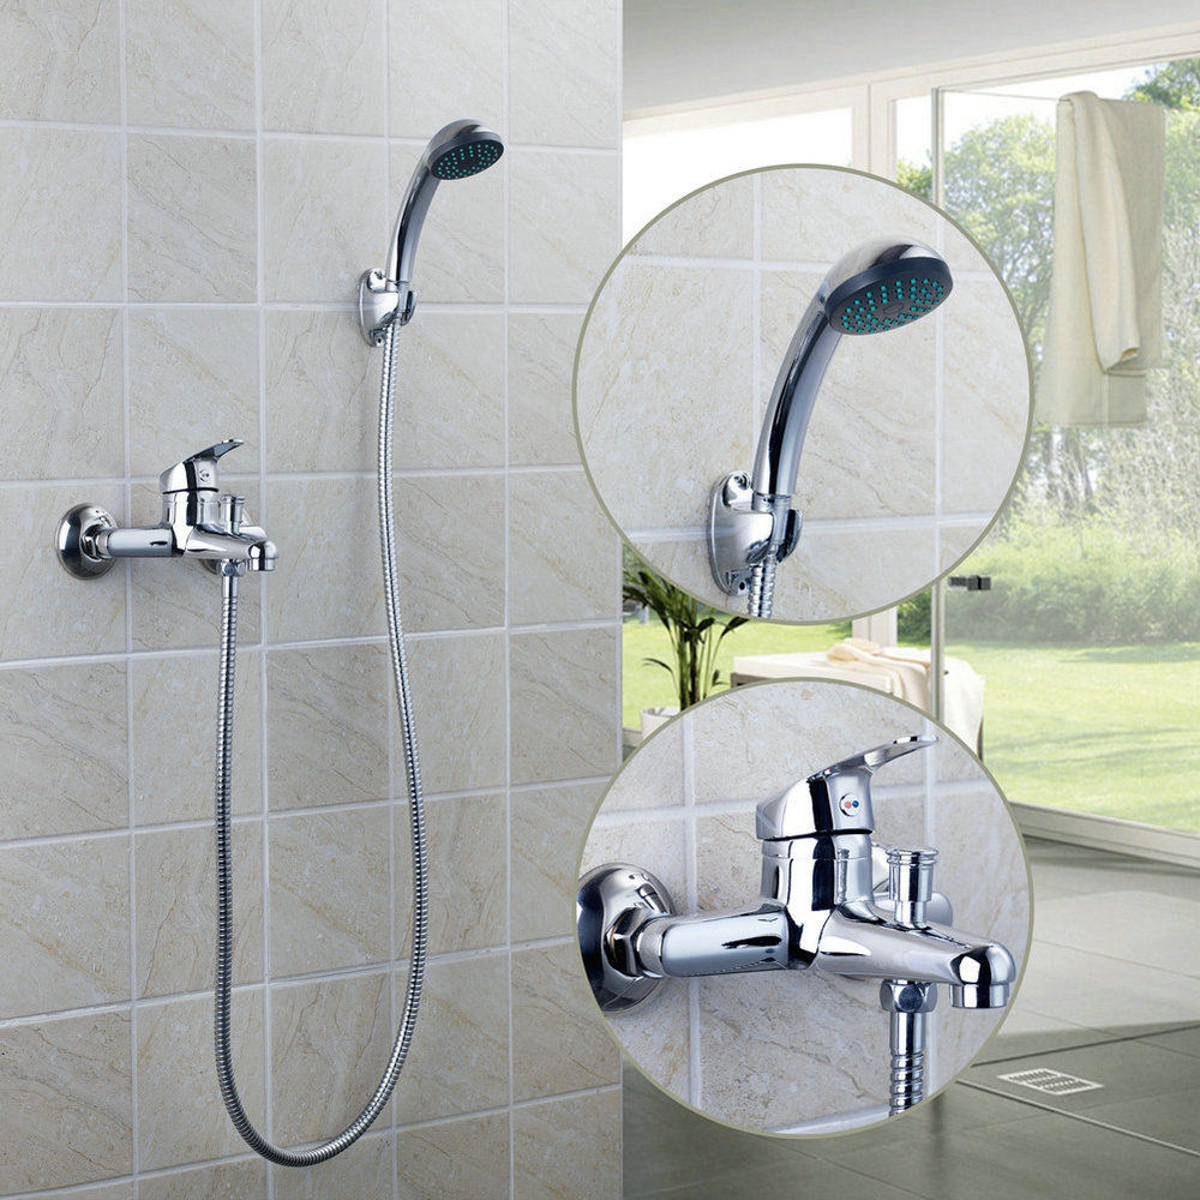 Chrome Wall Mounted Bathroom Bathtub Shower Faucet Set Mixer With